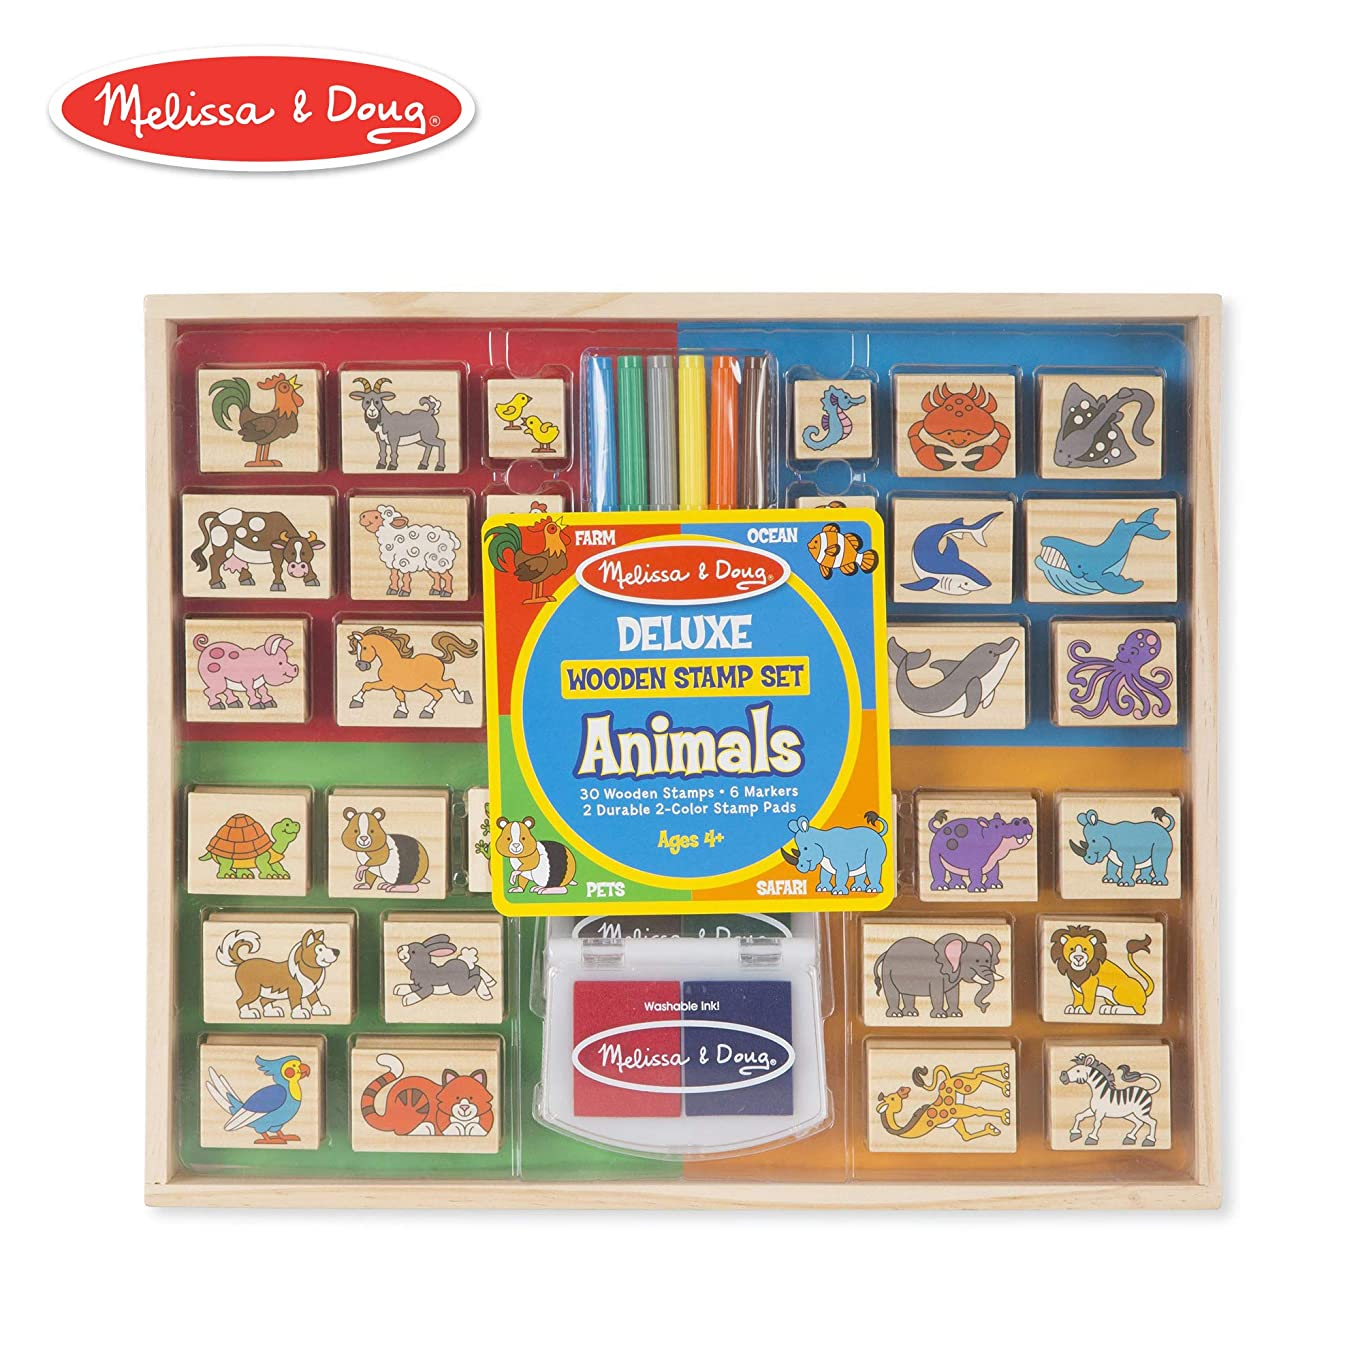 Melissa & Doug Deluxe Wooden Stamp Set, Animal Stamps (Colored Washable Ink Pads, Develops Hand-Eye Coordination, 38 Pieces)